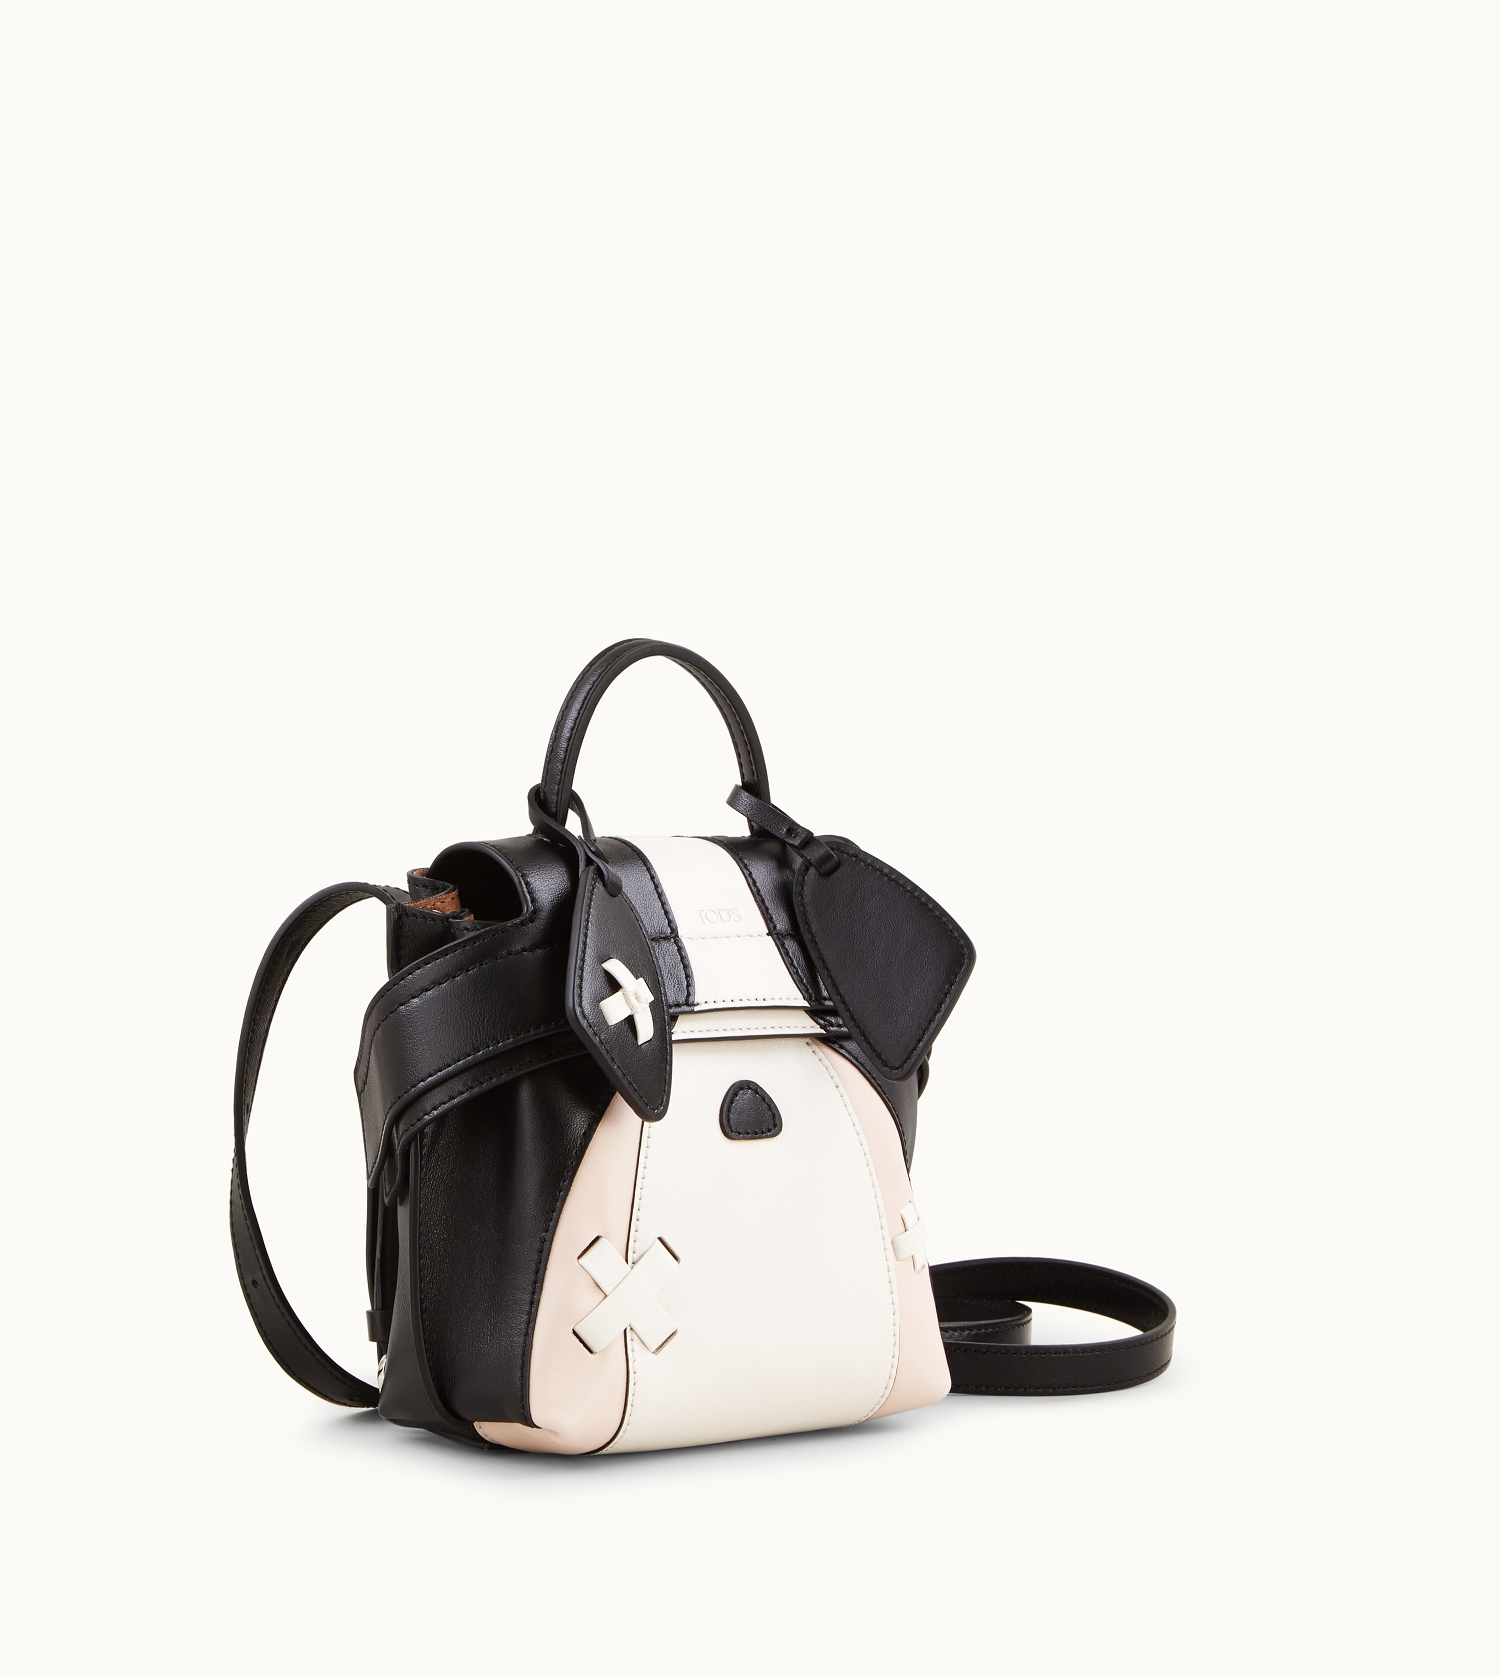 Tods X Mr Bags Puppies What We Adore Bag The Collection